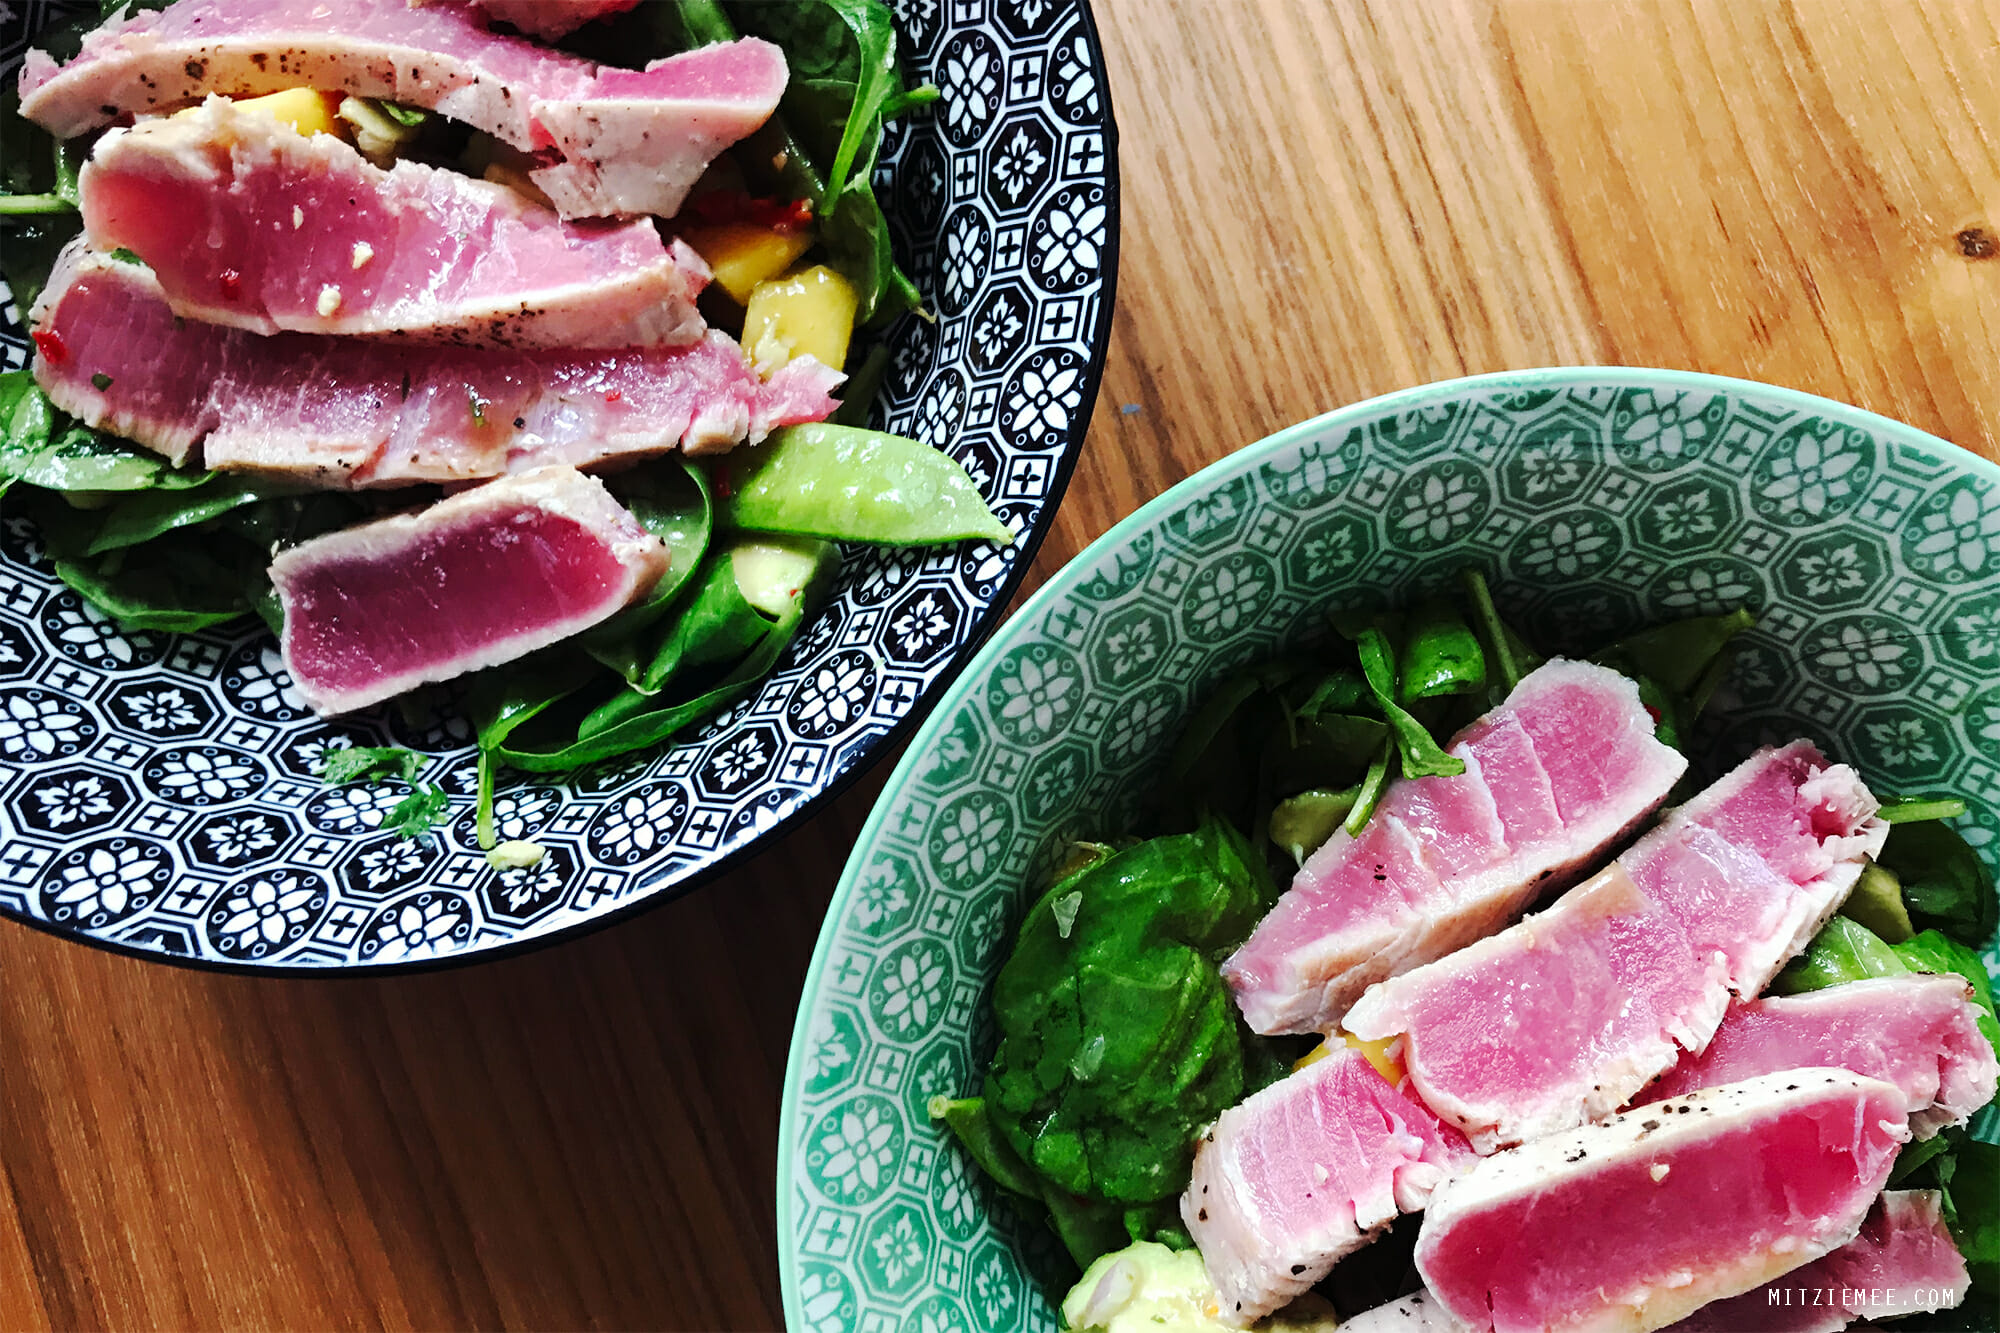 Salad with seared tuna, mango and avocado, recipe